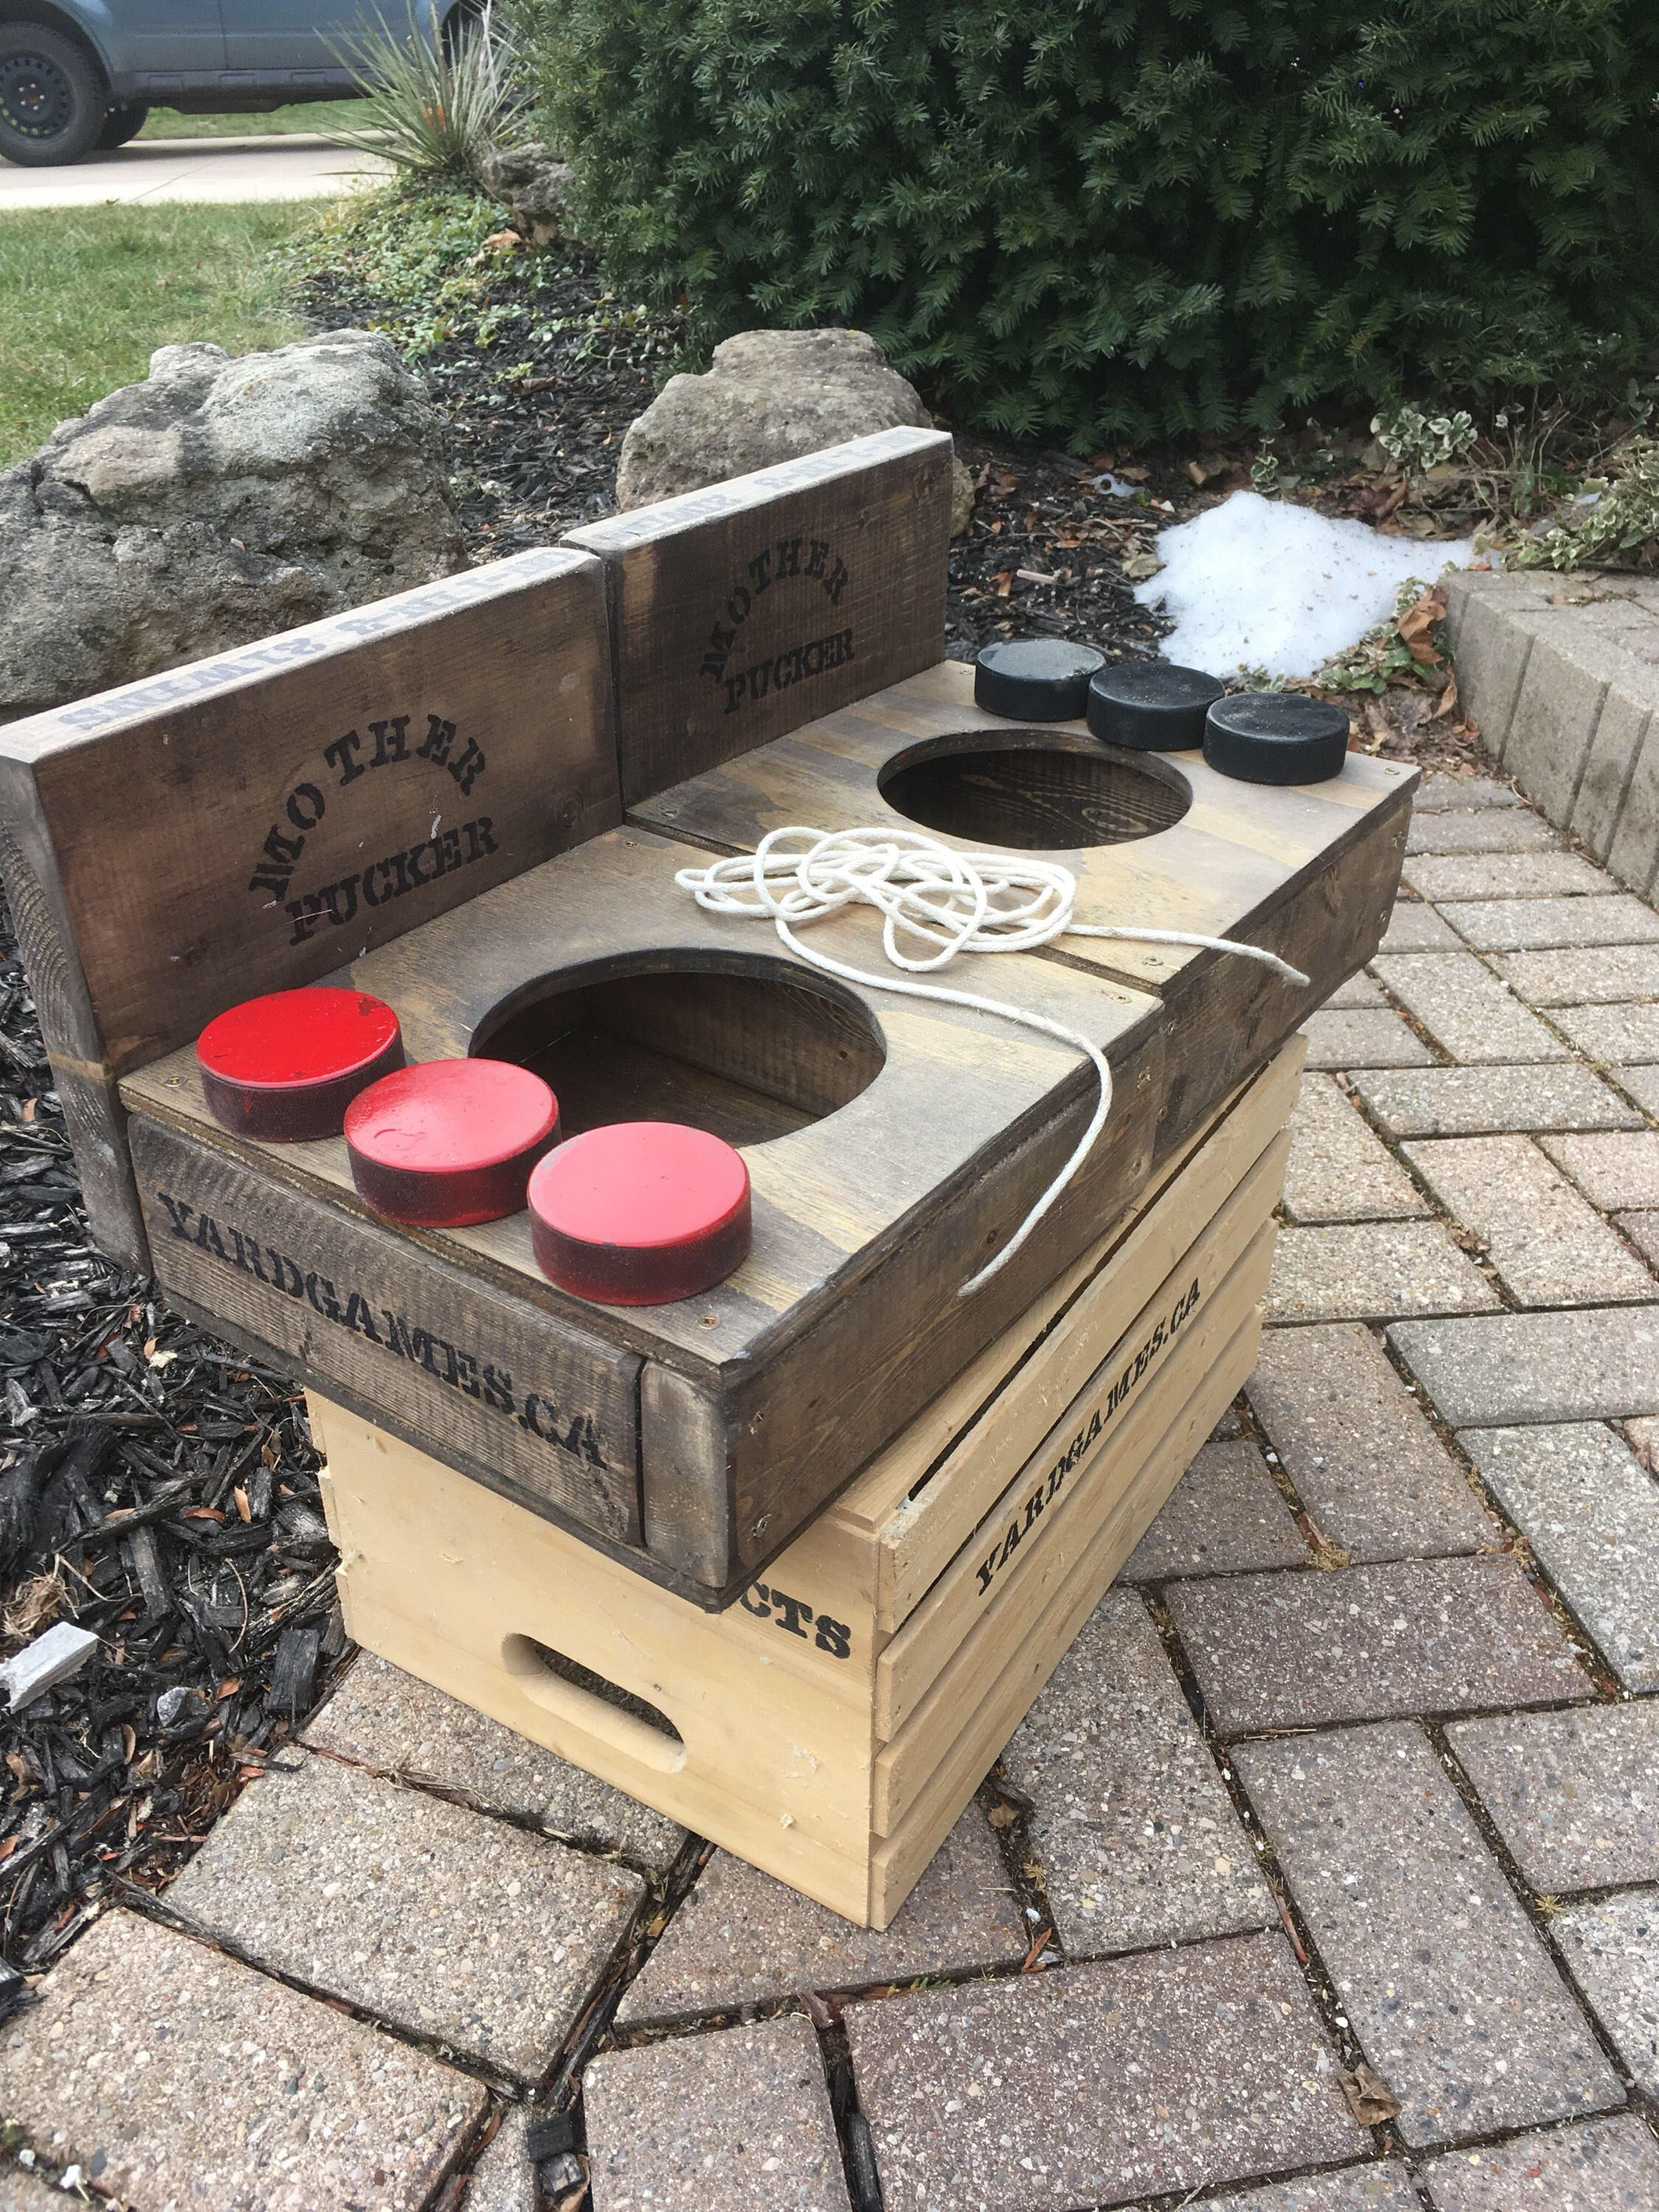 Hockey Puck Toss Game Mother Pucker Think Washer Toss Meets Cornhole With A Twist Washer Toss Washer Toss Game Hockey Puck